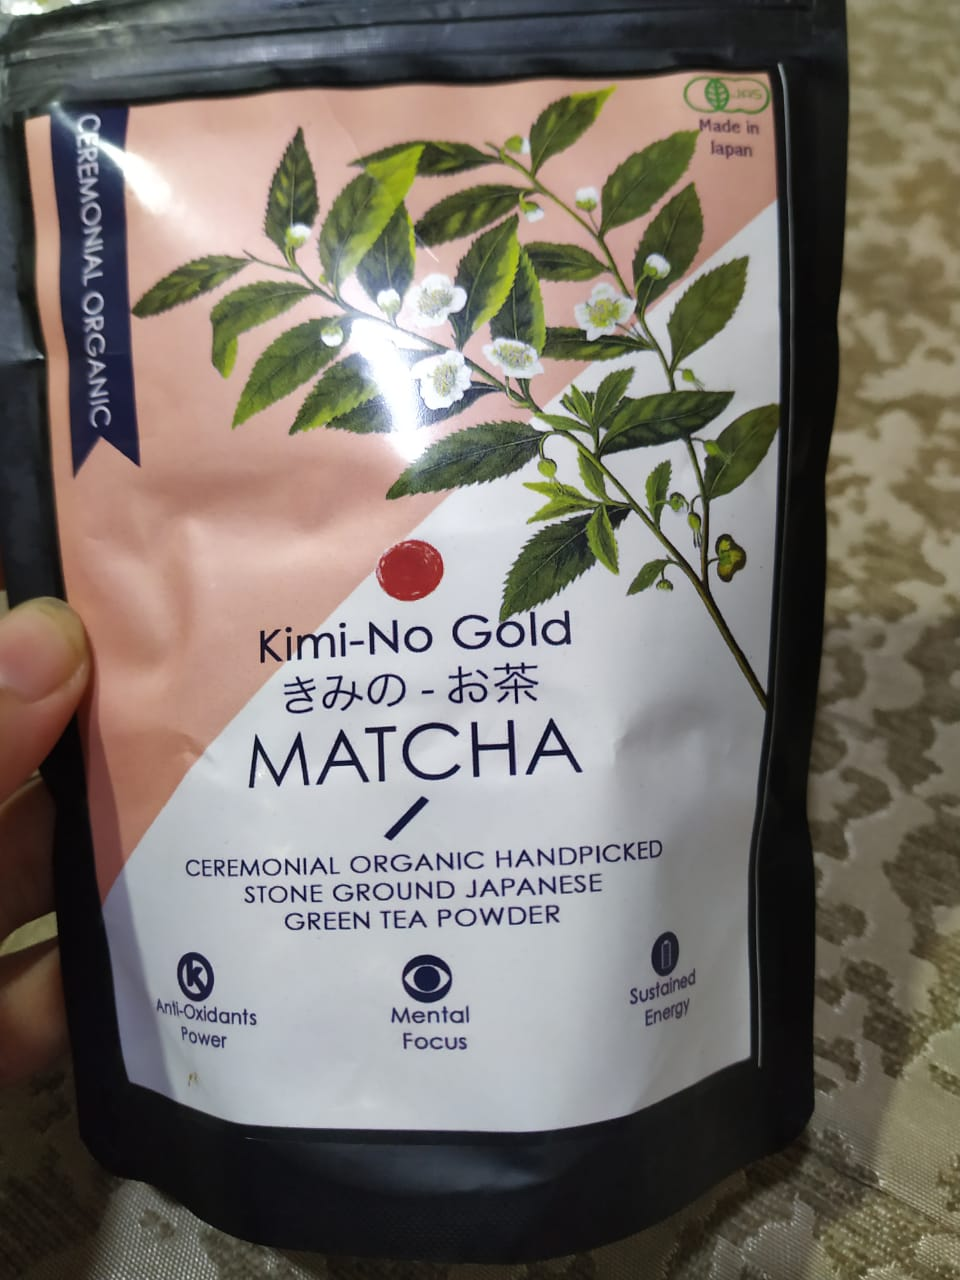 Kimino Gold Matcha Ceremonial Grade Green Tea Powder pic 2-Amazing Organic Matcha Tea-By rita_punjabi